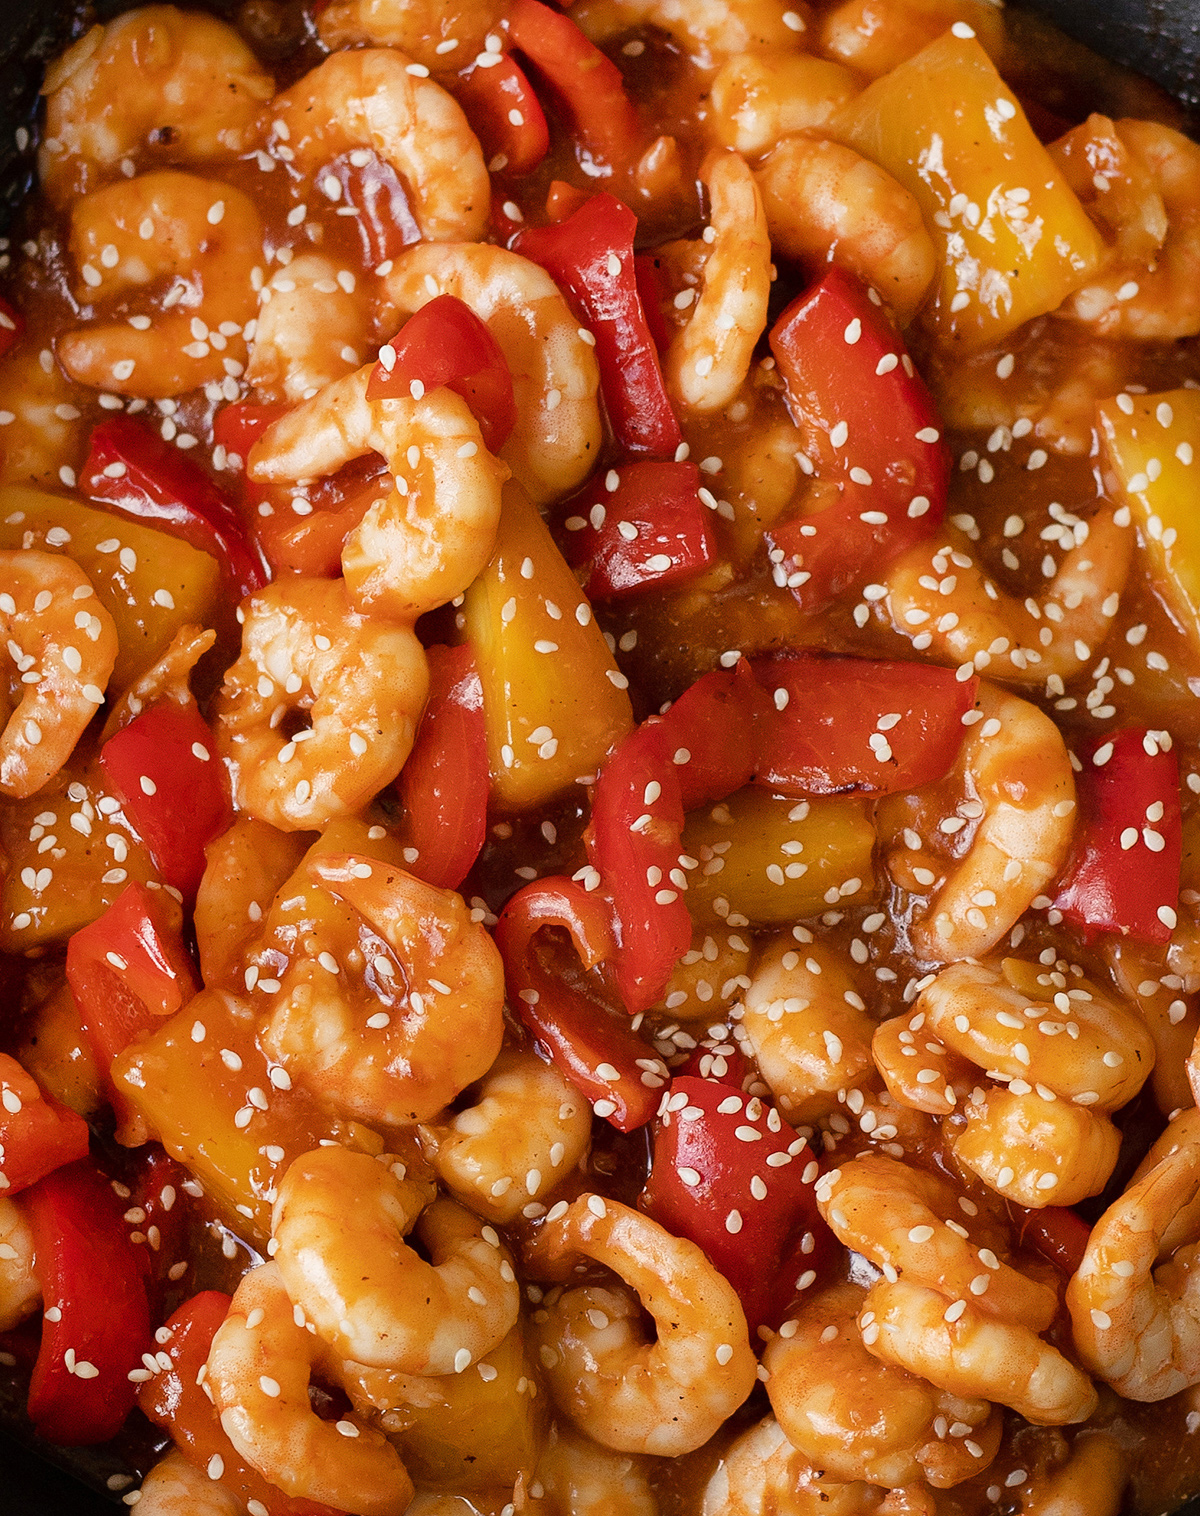 Sweet and Sour Shrimp is a quick stir-fried Chinese meal